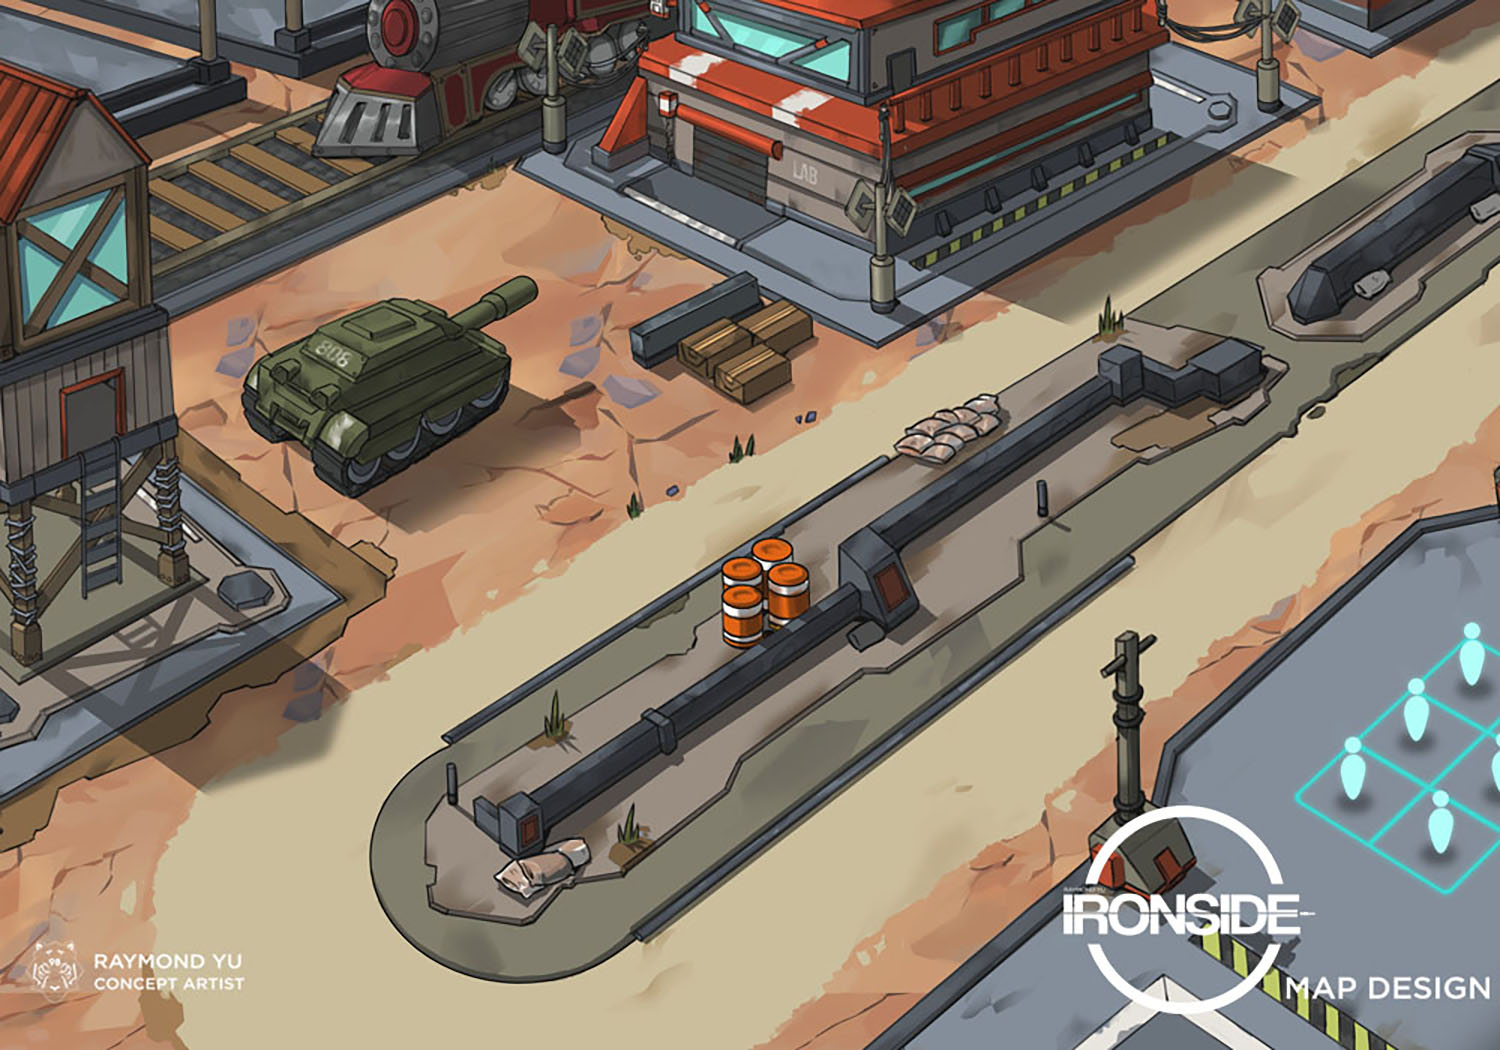 IRONSIDE map design. This map is focusing on teaching the player the basics of X-Com style games, which are a genre of games heavily influenced by strategy games.